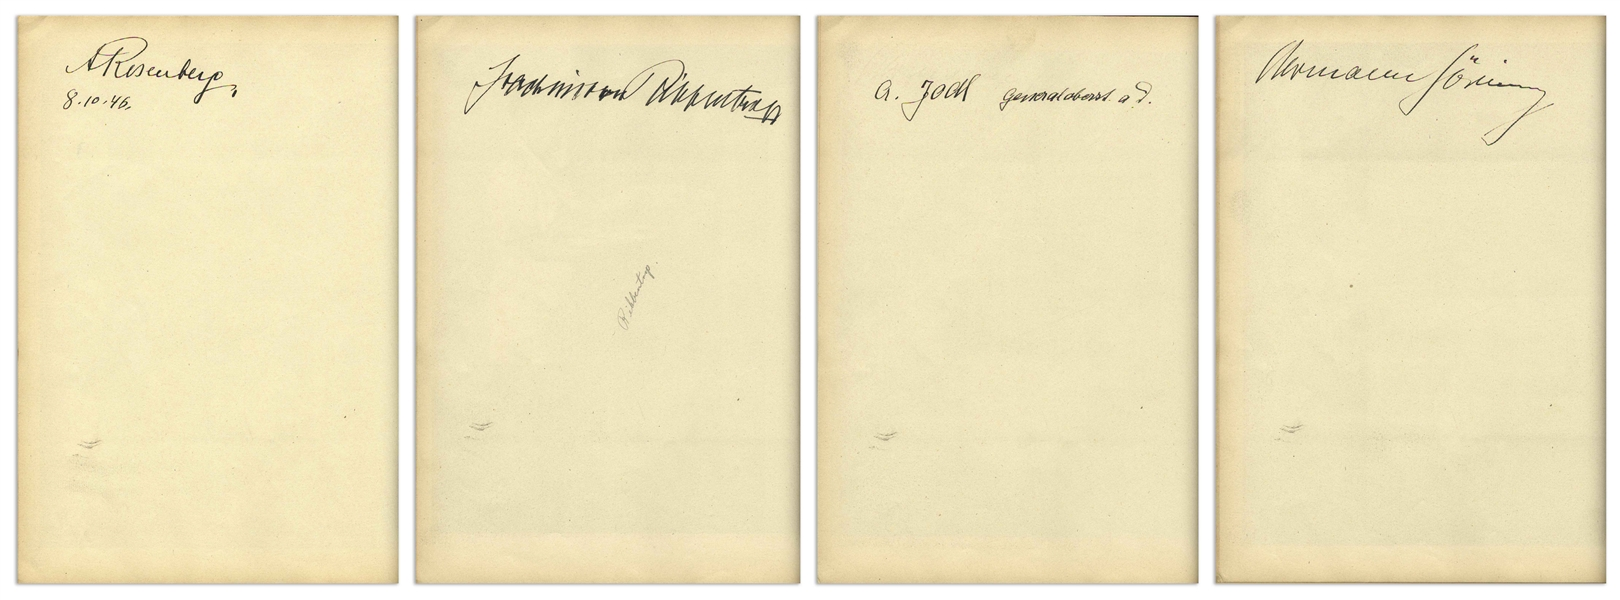 Nuremberg Book Signed by 18 Nazi War Criminals During the WWII Nuremberg Trials -- Includes Signatures by Goring, Donitz, Streicher & Speer, and Also Two ID Cards by U.S. Guard Who Acquired Signatures